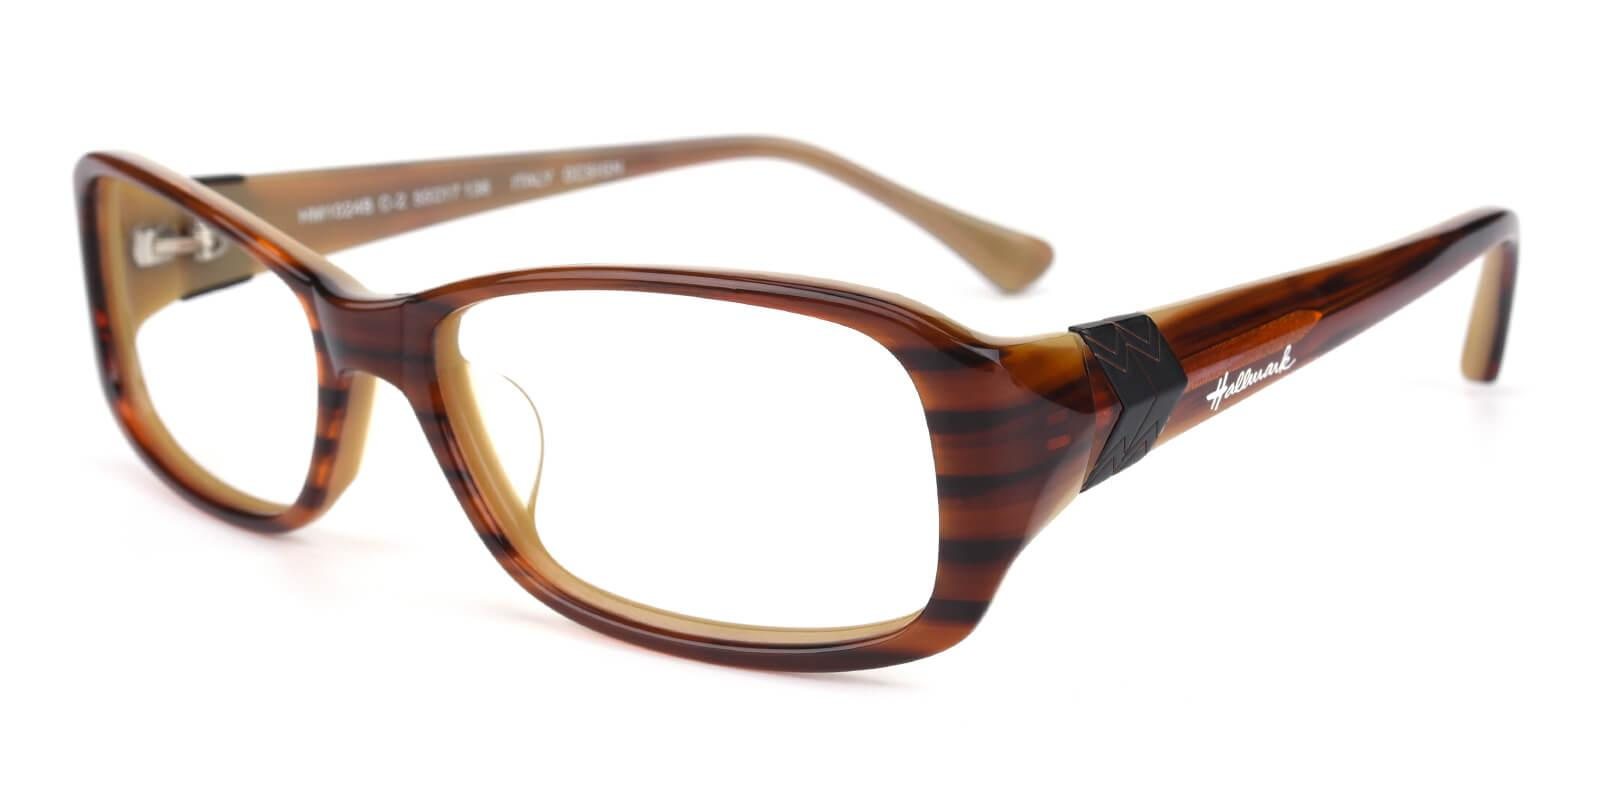 Hgytical-Tortoise-Rectangle-Acetate-Eyeglasses-additional1